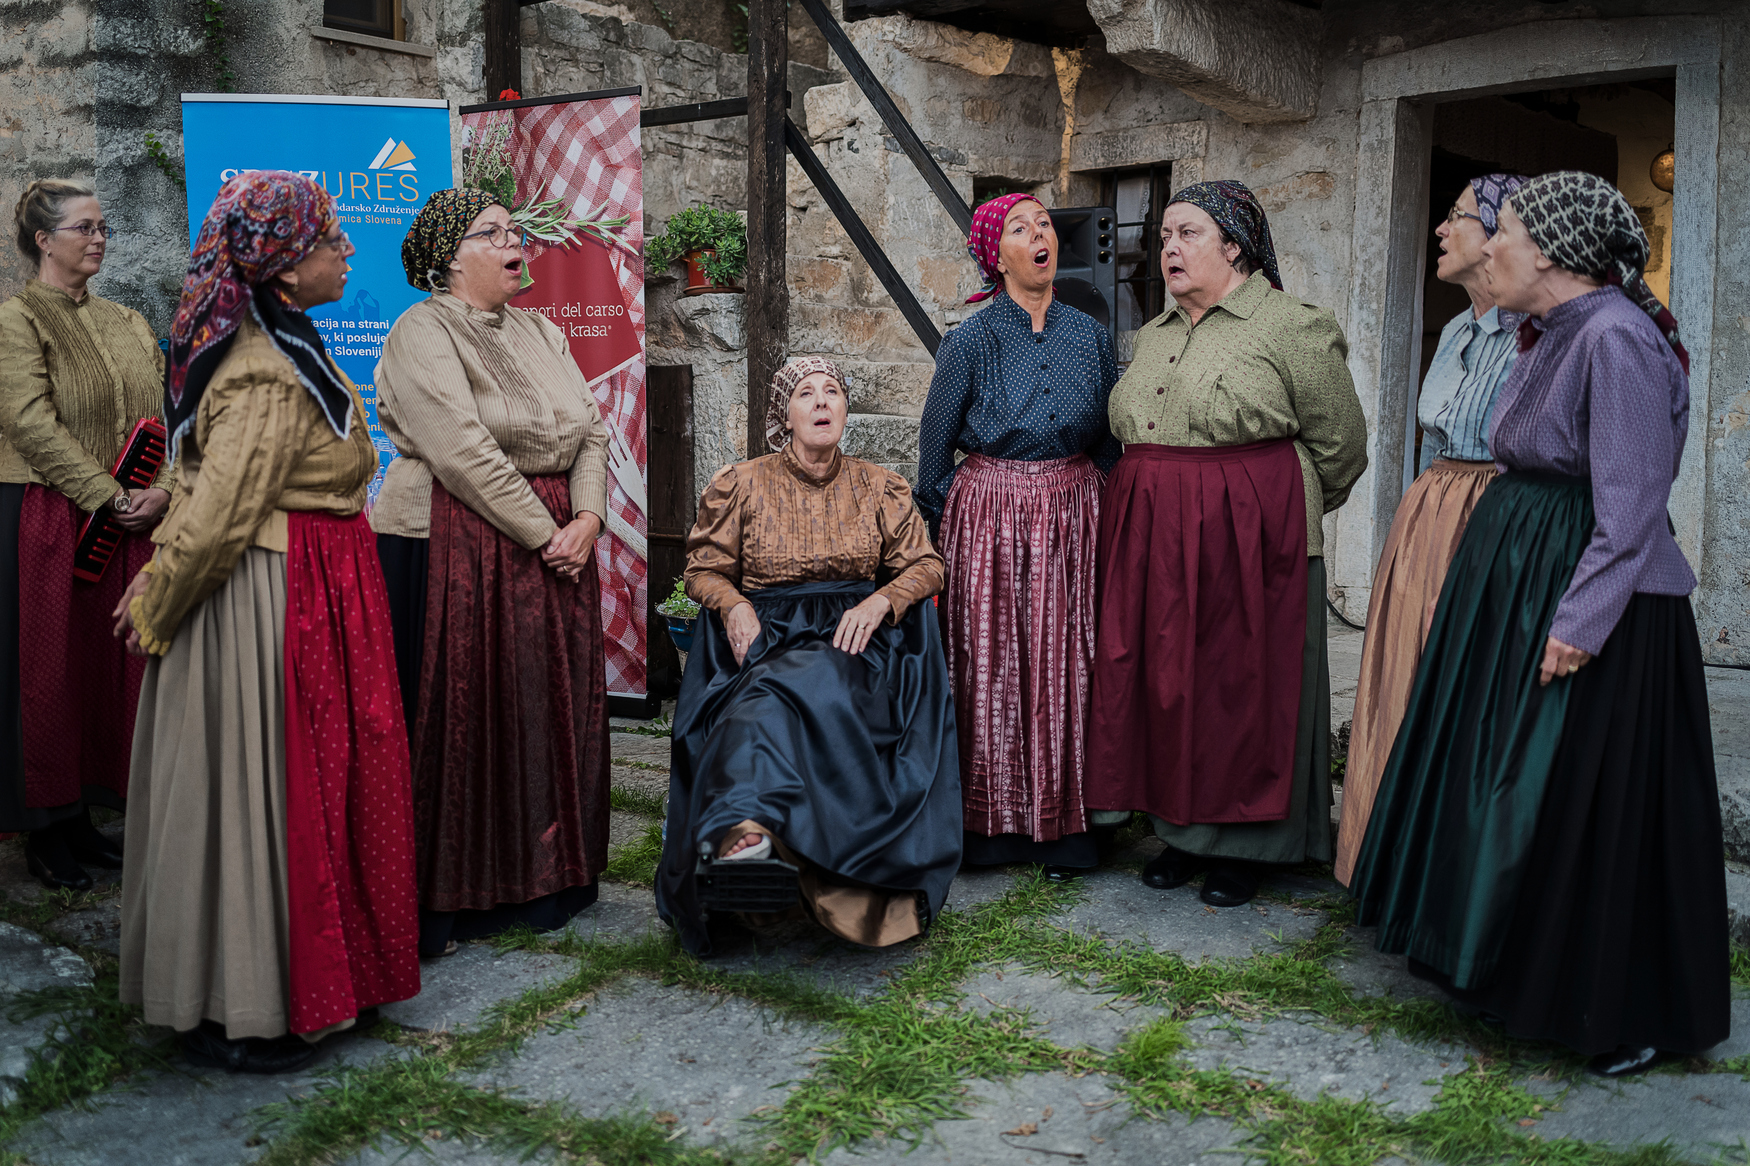 Radivoj Mosetti, Italia: Opening of Karst Wedding Traditional Event, Repen Village, 2018, A Hundred People – Women from the Valley, Italy - Women from the Valley is a Slovenian cross-border singing group from Trieste folklore society Stu ledi (A Hundred People). While choir members feel best when performing on concert stages, folk singers love to sing outdoors in the villages and nothing can stop them at such lovely events.